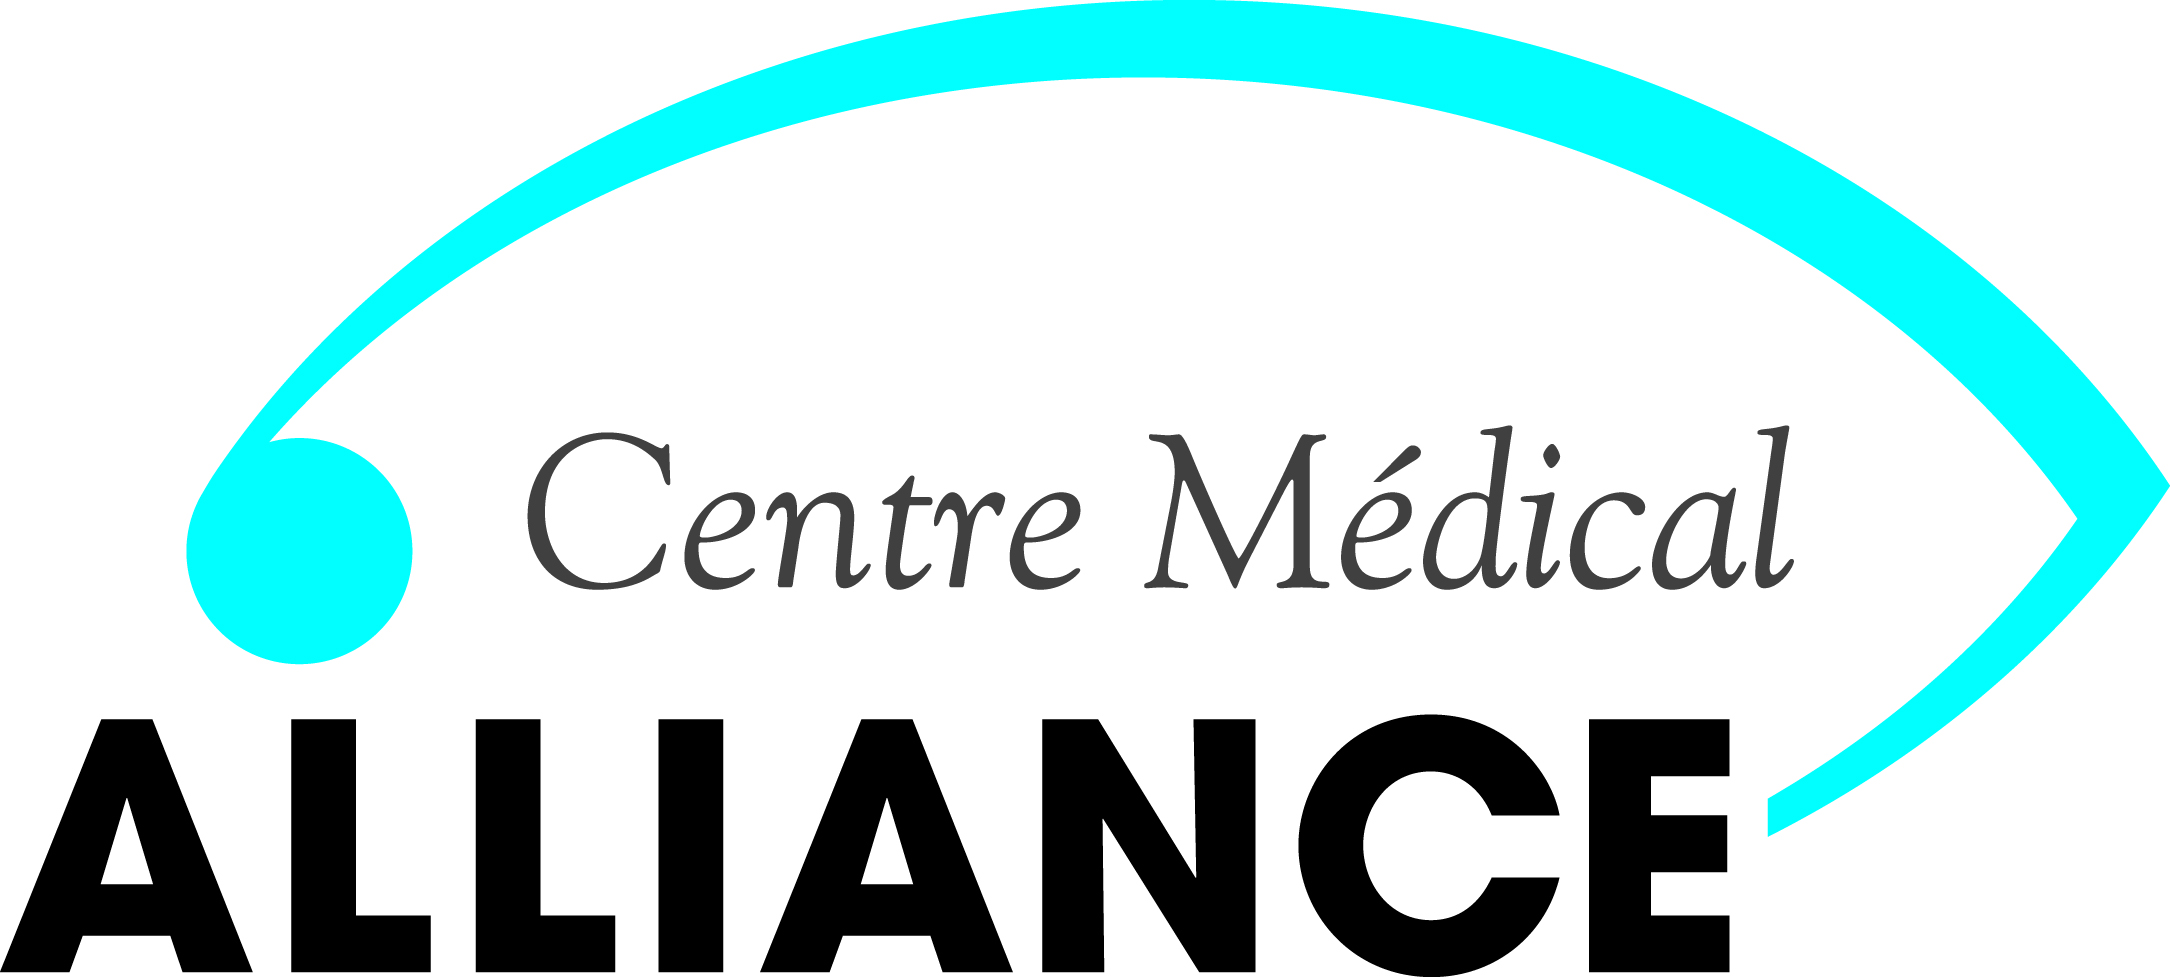 Centre médical de l'alliance